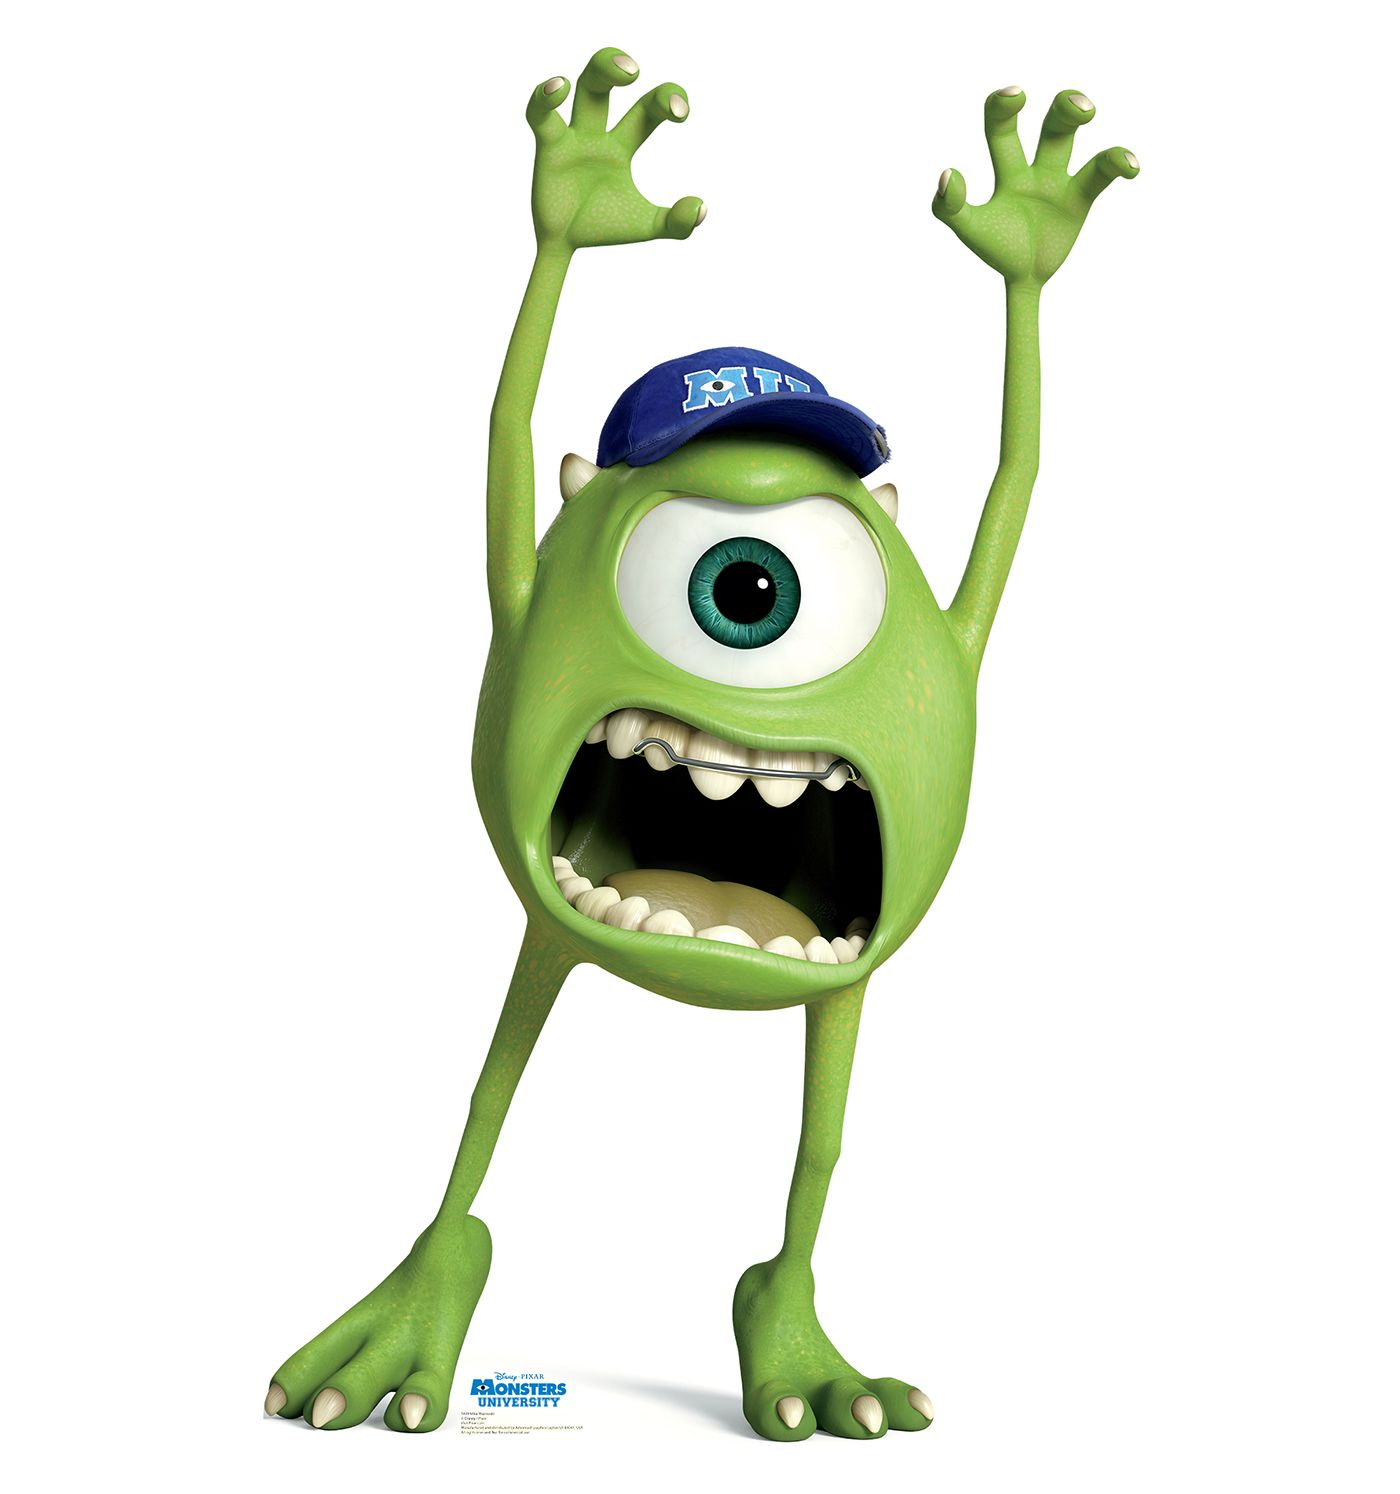 Mike Monsters University Cardboard Cutouts And Standups Monster University Monsters Inc Characters Disney Monsters